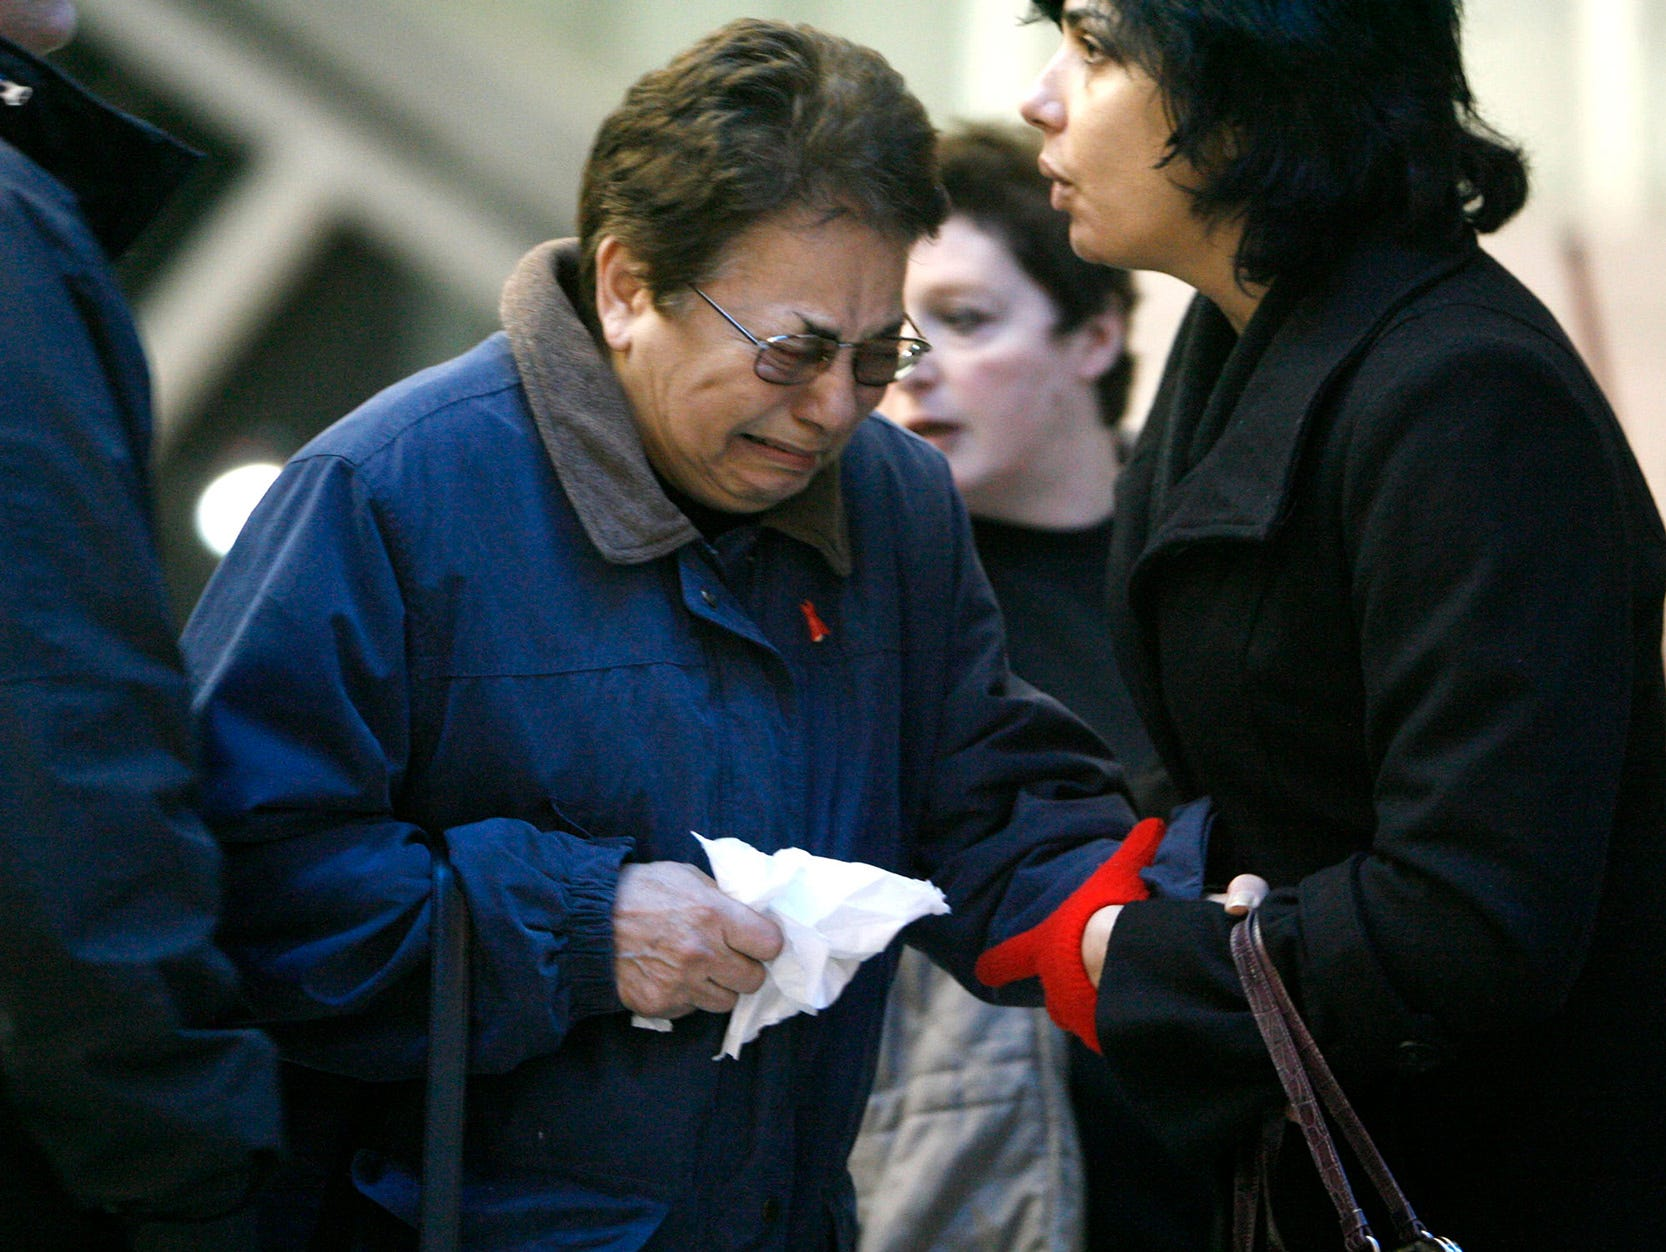 """""""Family members leave the Buffalo Niagara Airport on Thursday, Feb. 12, 2009 after Continental Airlines Flight 3407 crashed into a home in Clarence Center, N.Y. A commuter plane """"""""basically dove"""""""" into a house while coming in for a landing, sparking a fiery explosion that killed all 48 people on board and one person on the ground, an emergency official said Friday. (AP PHOTO/The Buffalo News,Harry Scull Jr)"""""""